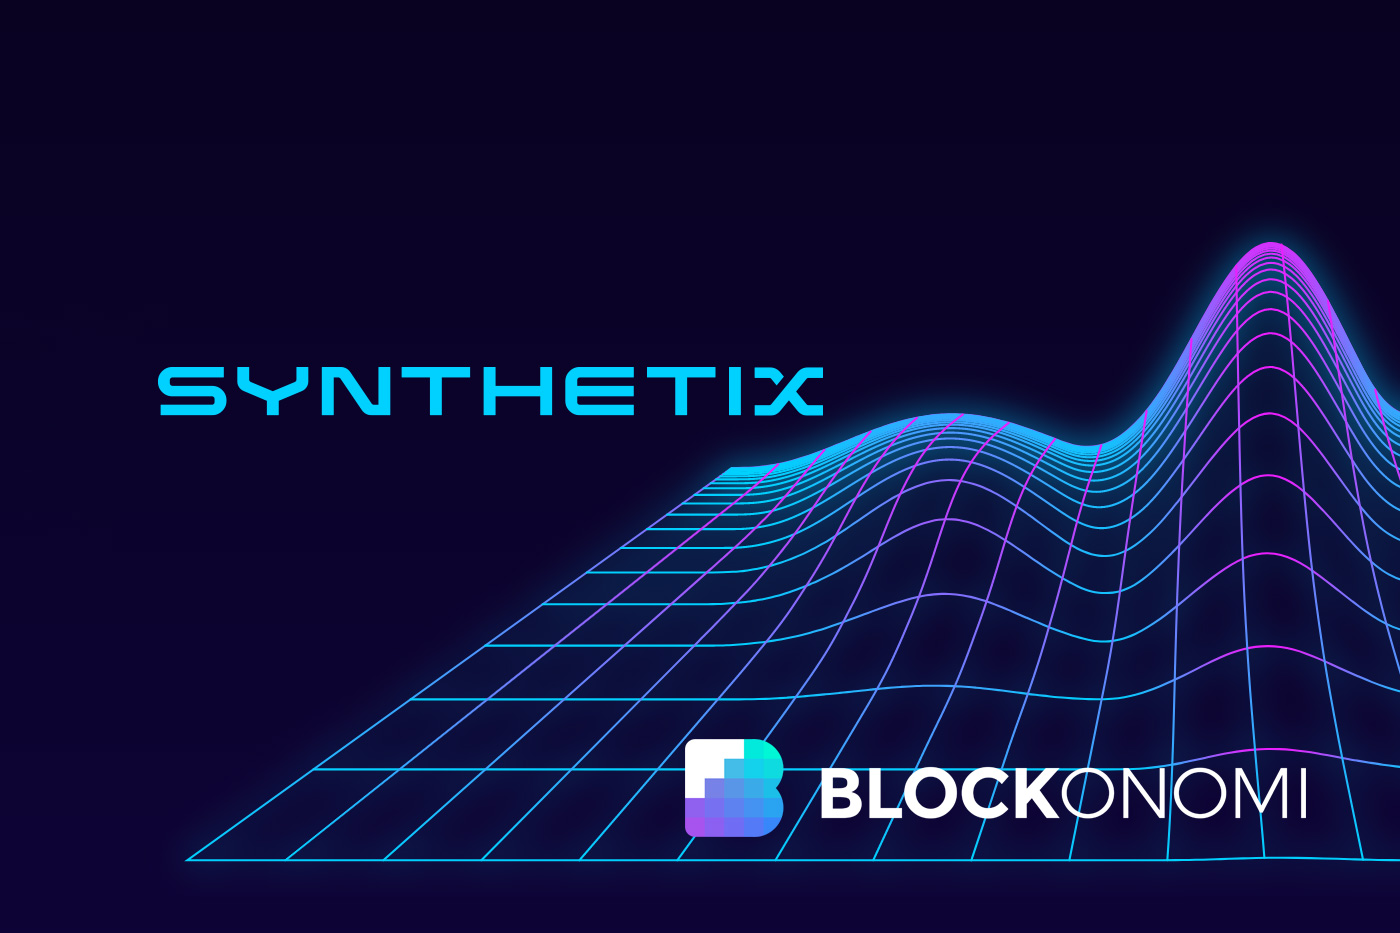 Synthetix Staking Guide: DeFi Synthetic Asset Liquidity Protocol